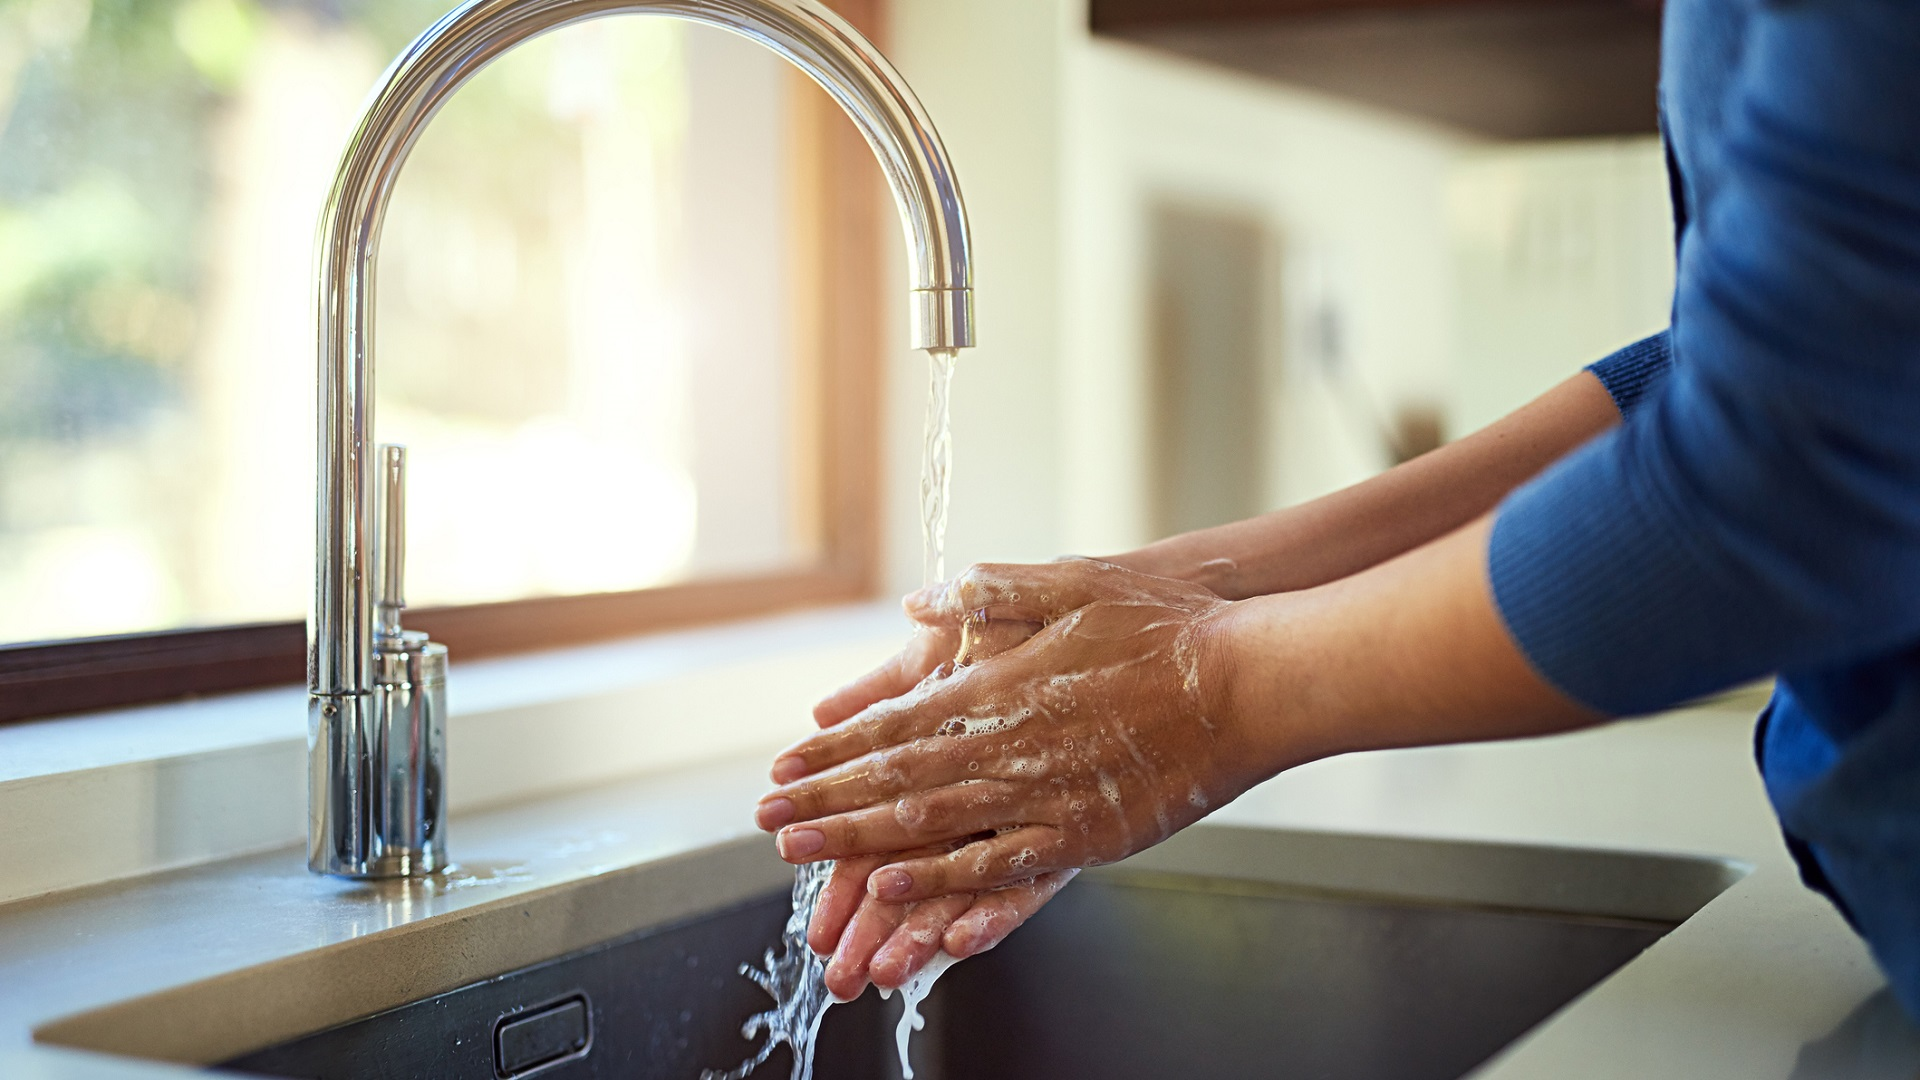 How to Wash Your Hands to Prevent the Spread of Coronavirus